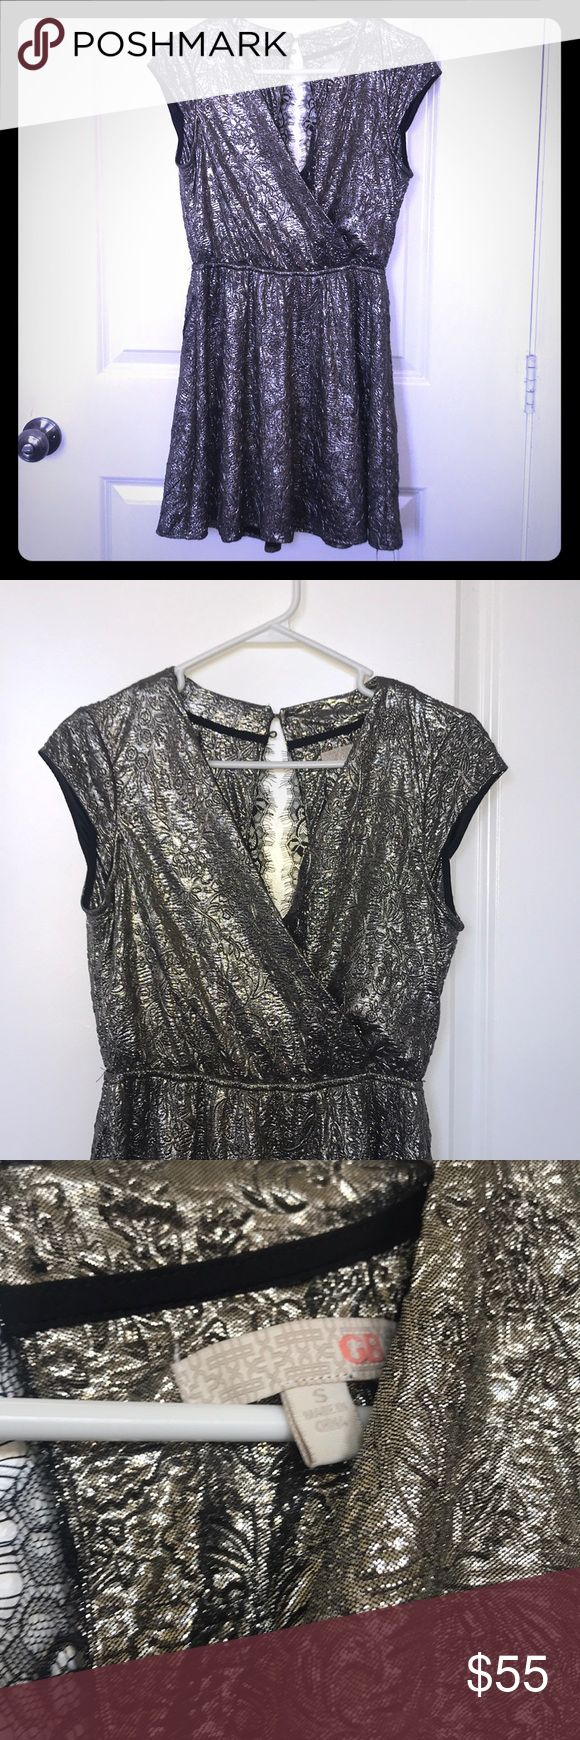 Gianni Bini Silver Metallic Dress! I wore this once for a Christmas party! Mint condition! Gianni Bini Dresses